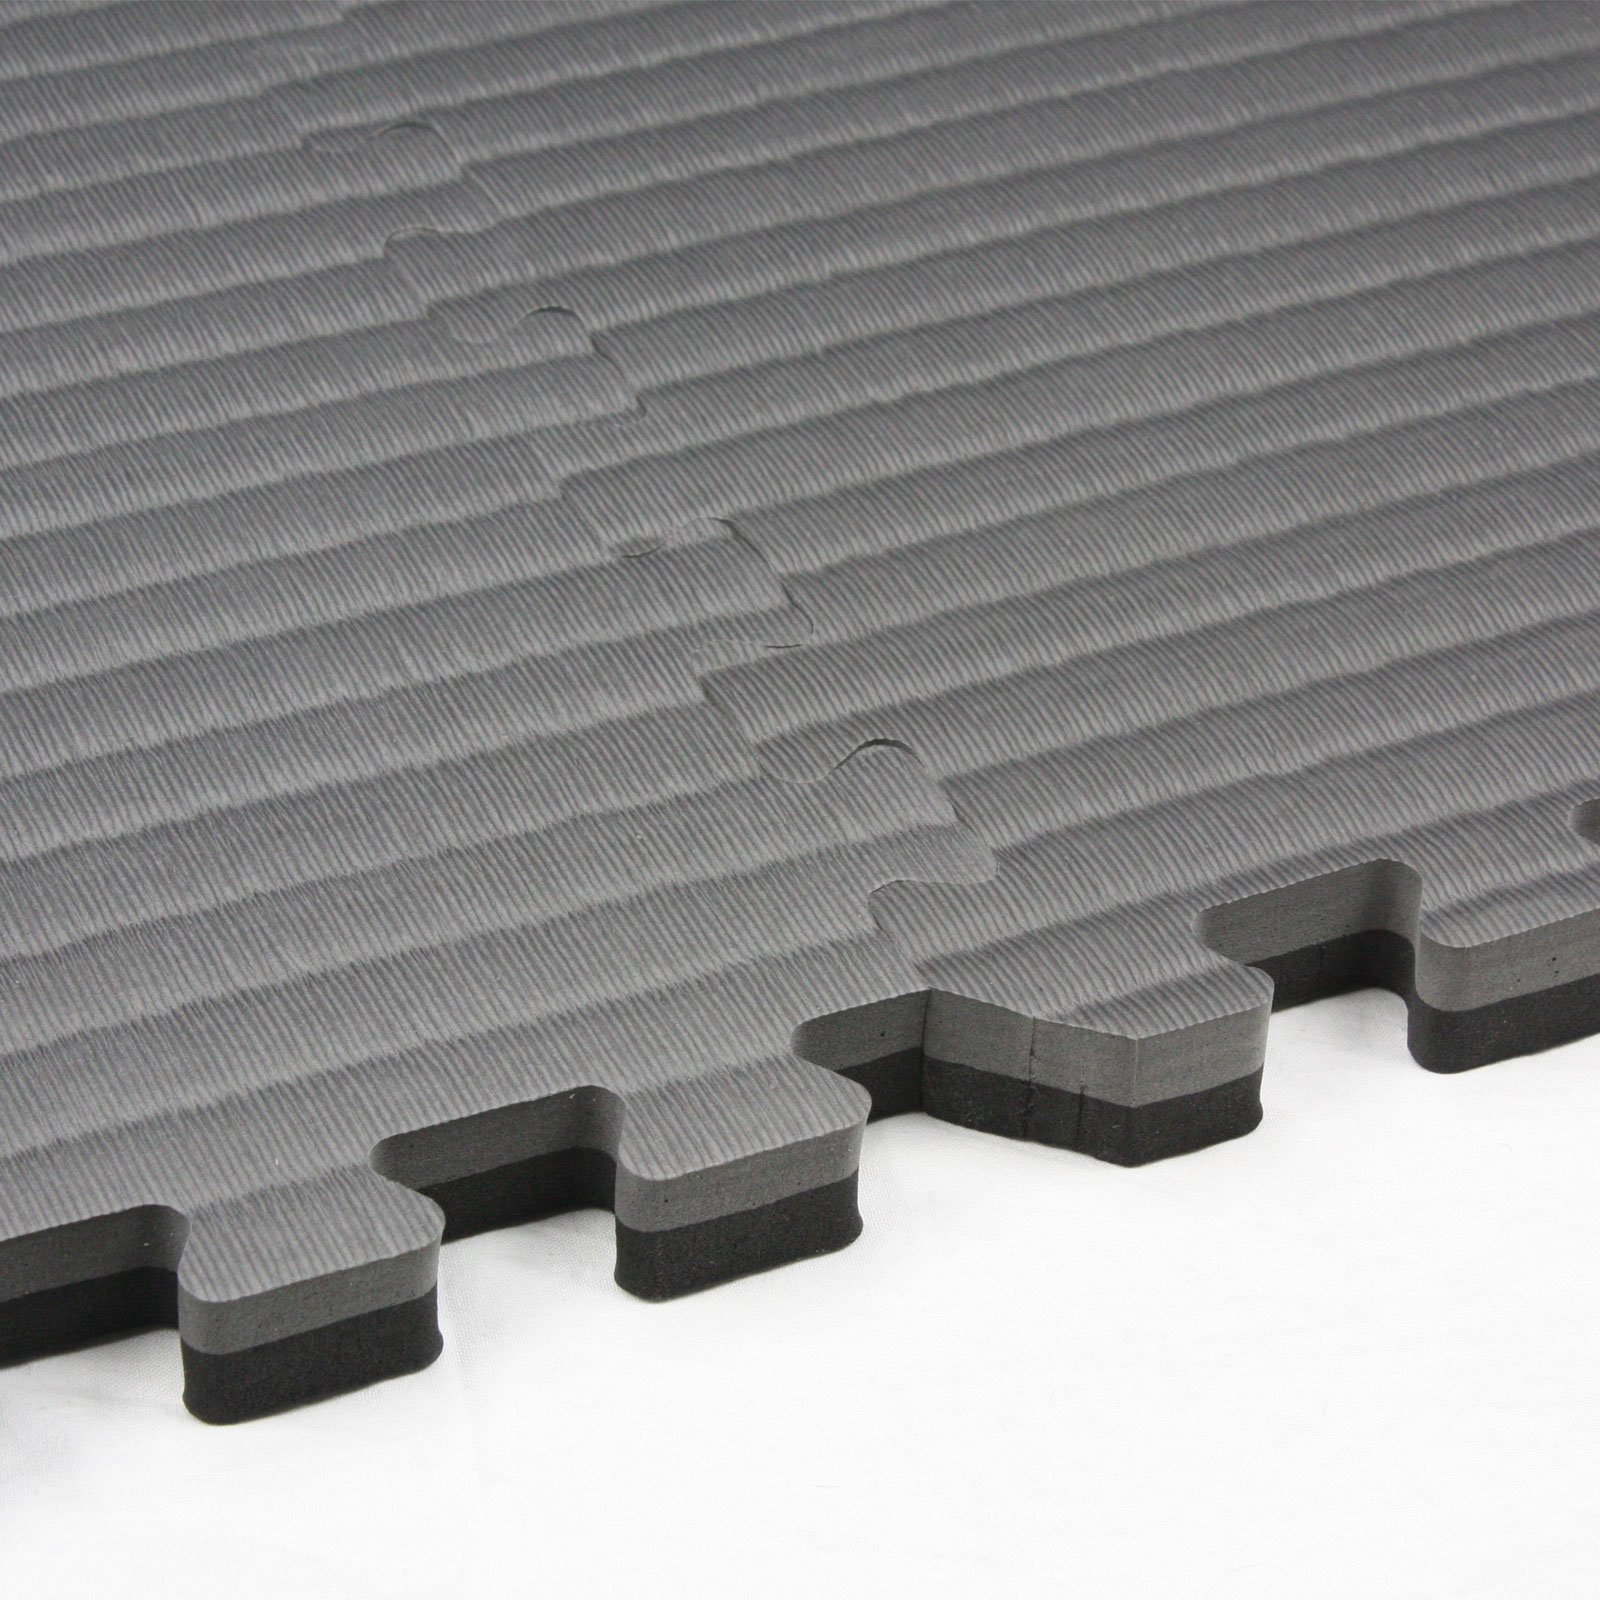 IncStores - Tatami Foam Tiles (Black/Grey, 16 Tiles) - Extra Thick mats Perfect for Martial Arts, MMA, Lightweight Home Gyms, p90x, Gymnastics, Yoga, Cardio, Aerobic, and Exercises by IncStores (Image #4)